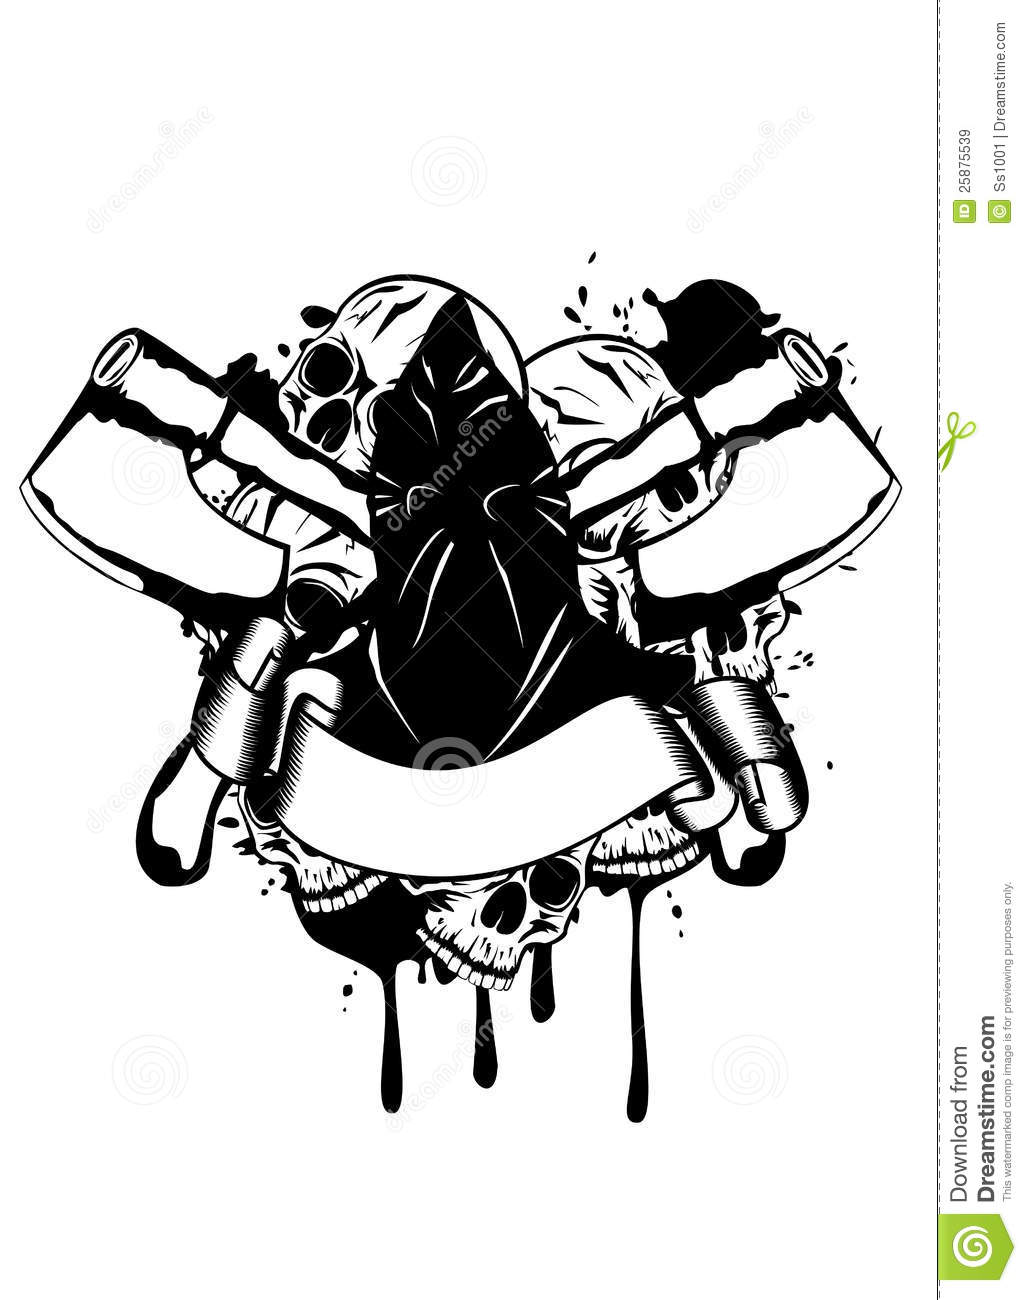 executioner royalty free stock images